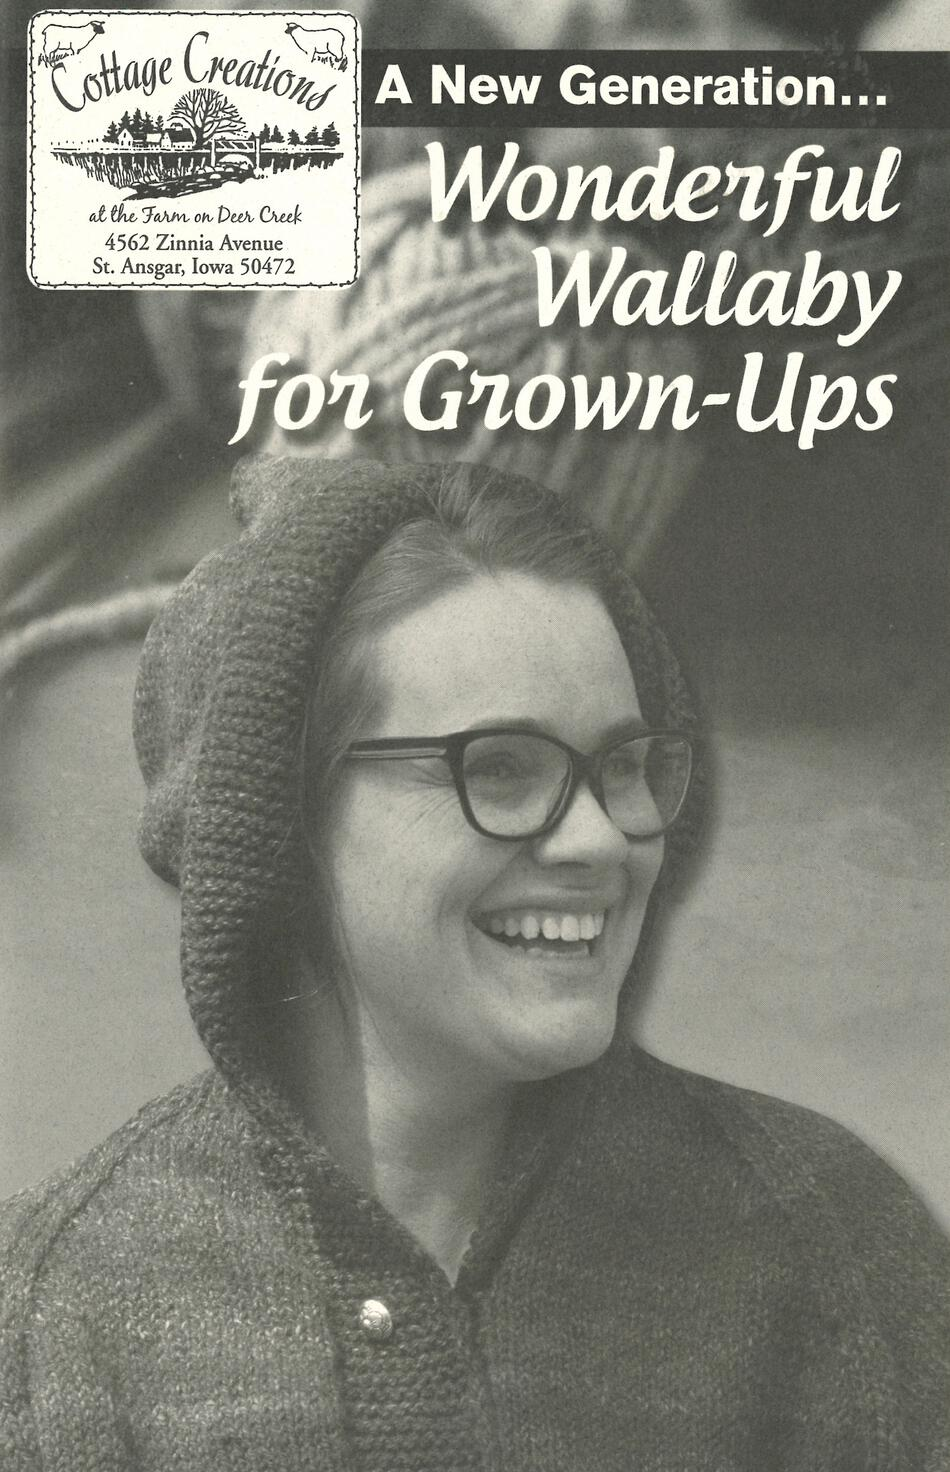 Knitting Books A New Generation Wonderful Wallaby for GrownUps